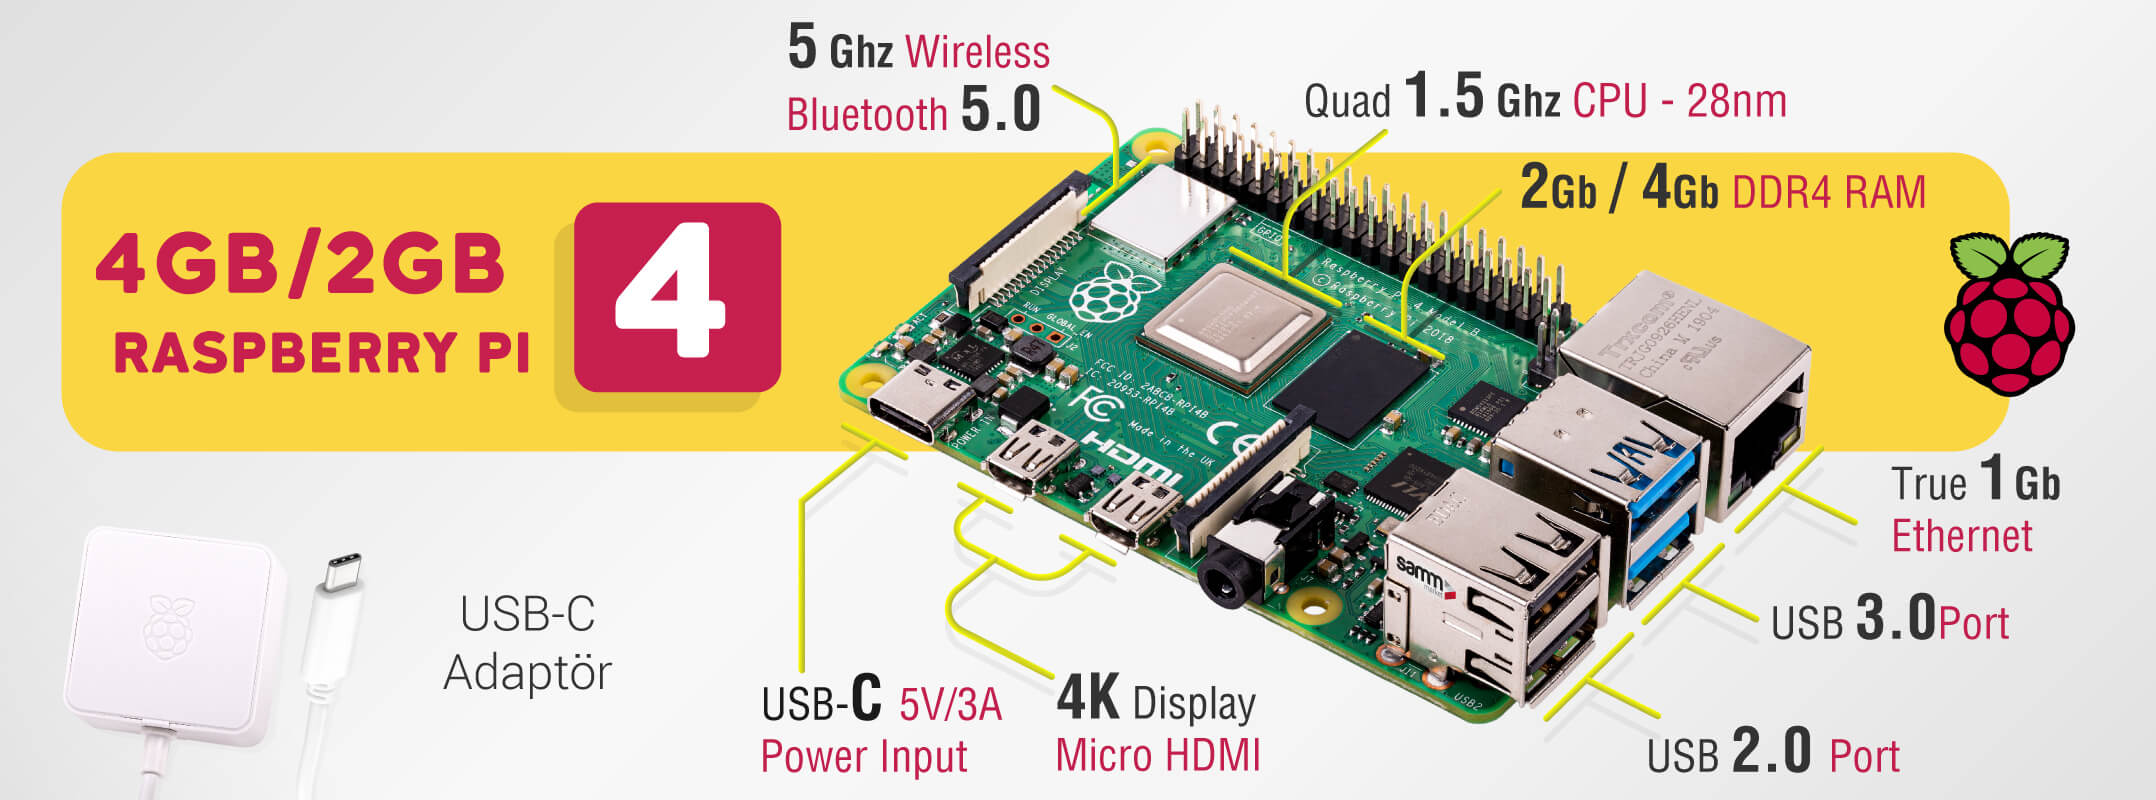 Raspberry Pi 4 4GB / 2GB